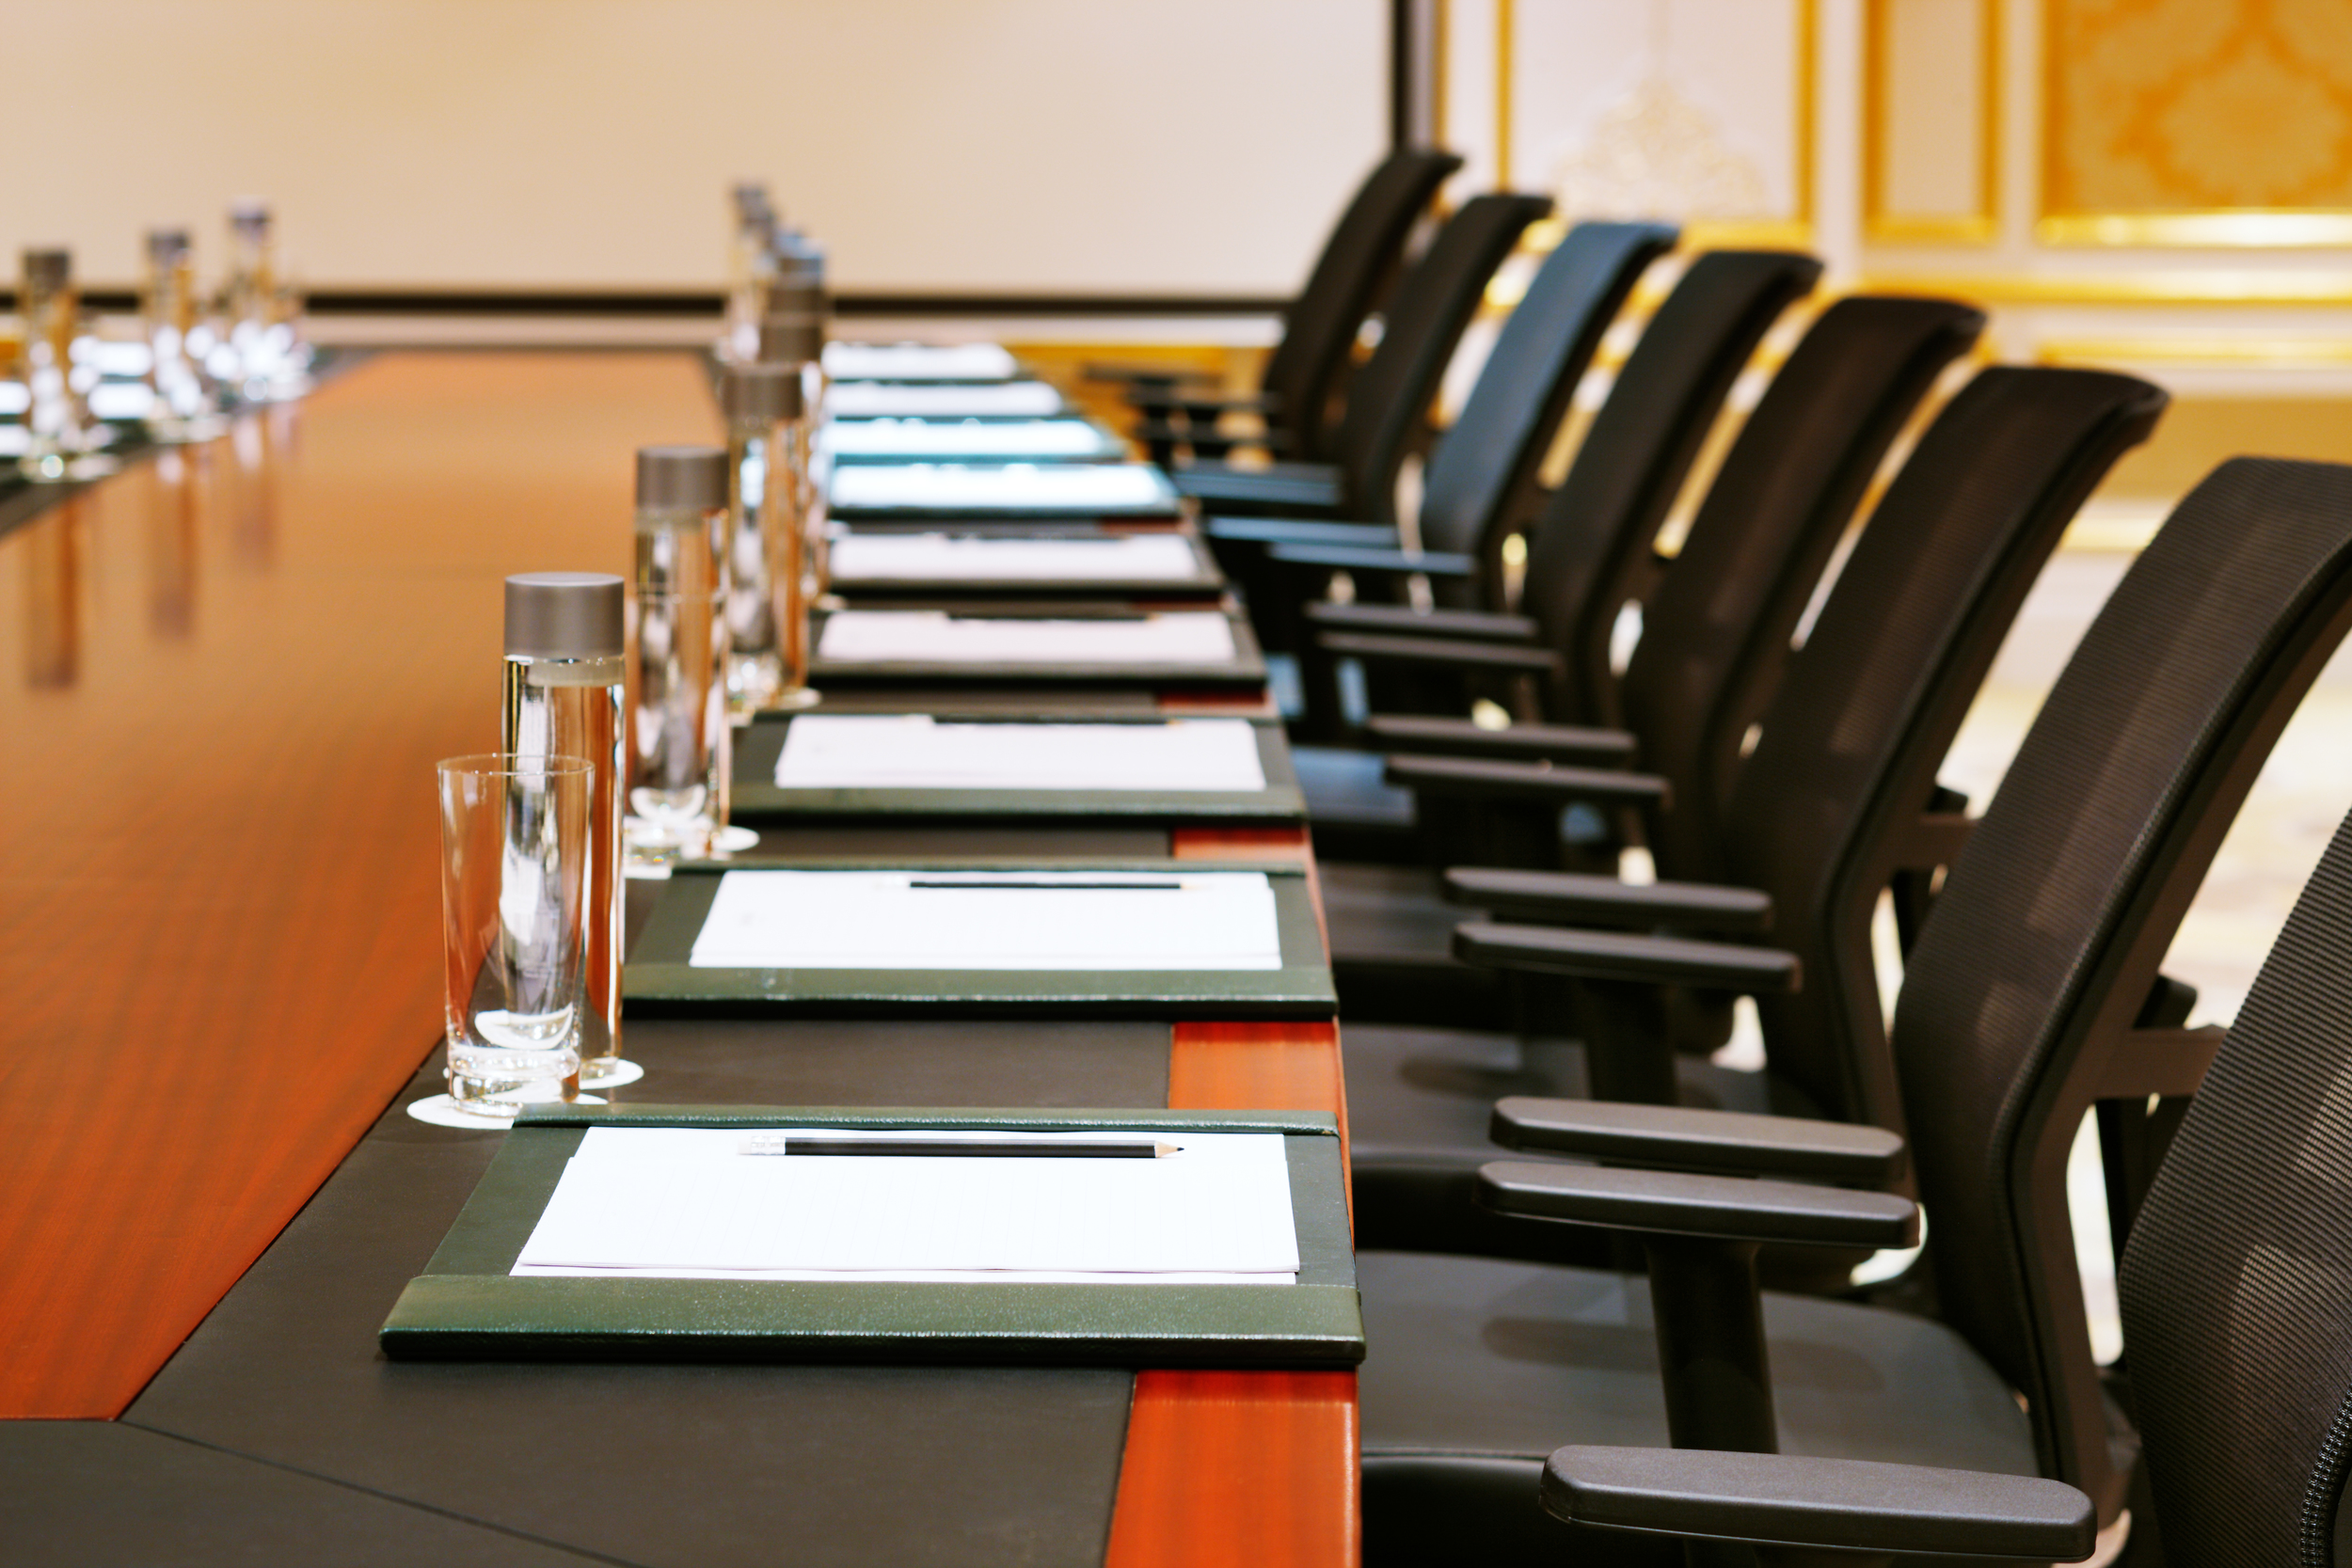 Corporate Events Management   We at Capworth Conference Events take on and deliver your conference in its entirety. Our objective is to take the strain out of your conferences to enable you concentrate on delivering your key objectives